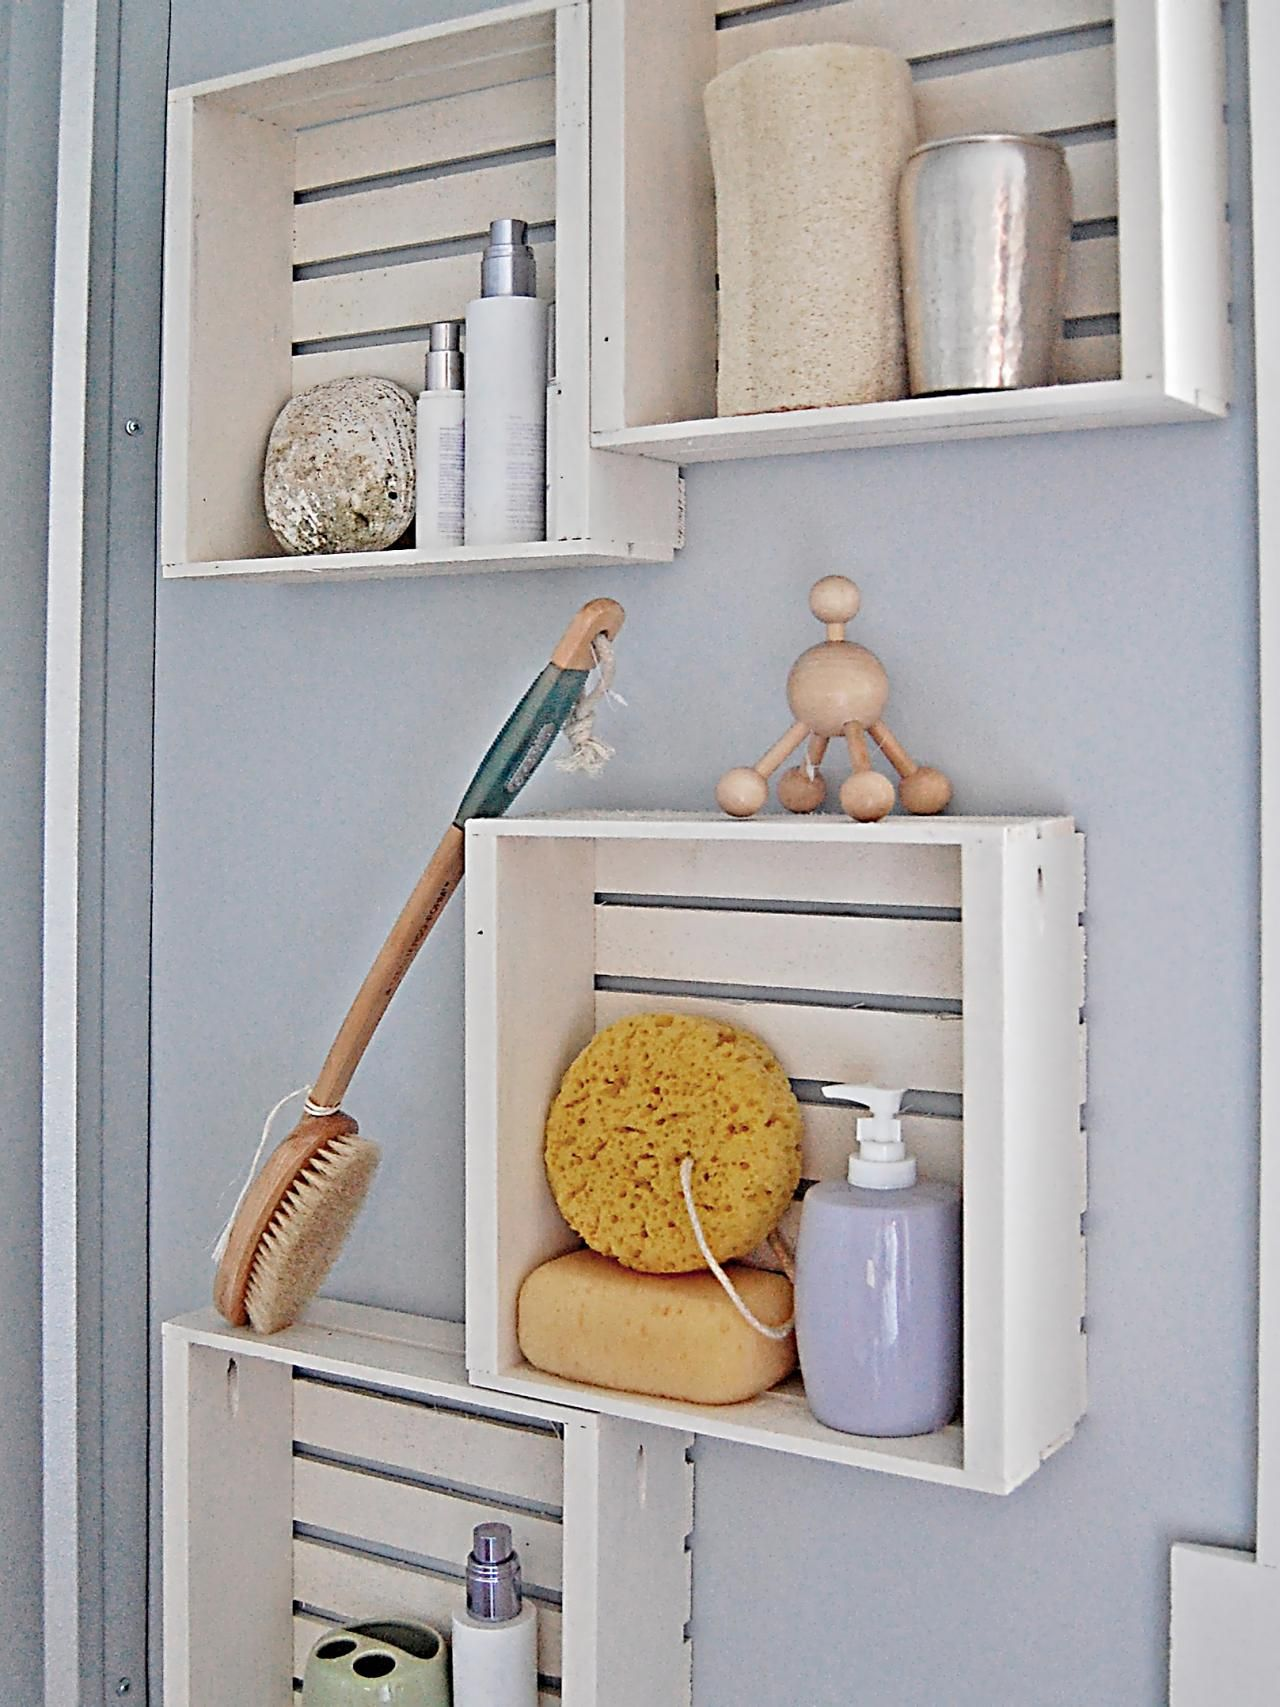 12 Clever Bathroom Storage Ideas Design With Vanities Tile Cabinets Sinks Hgtv